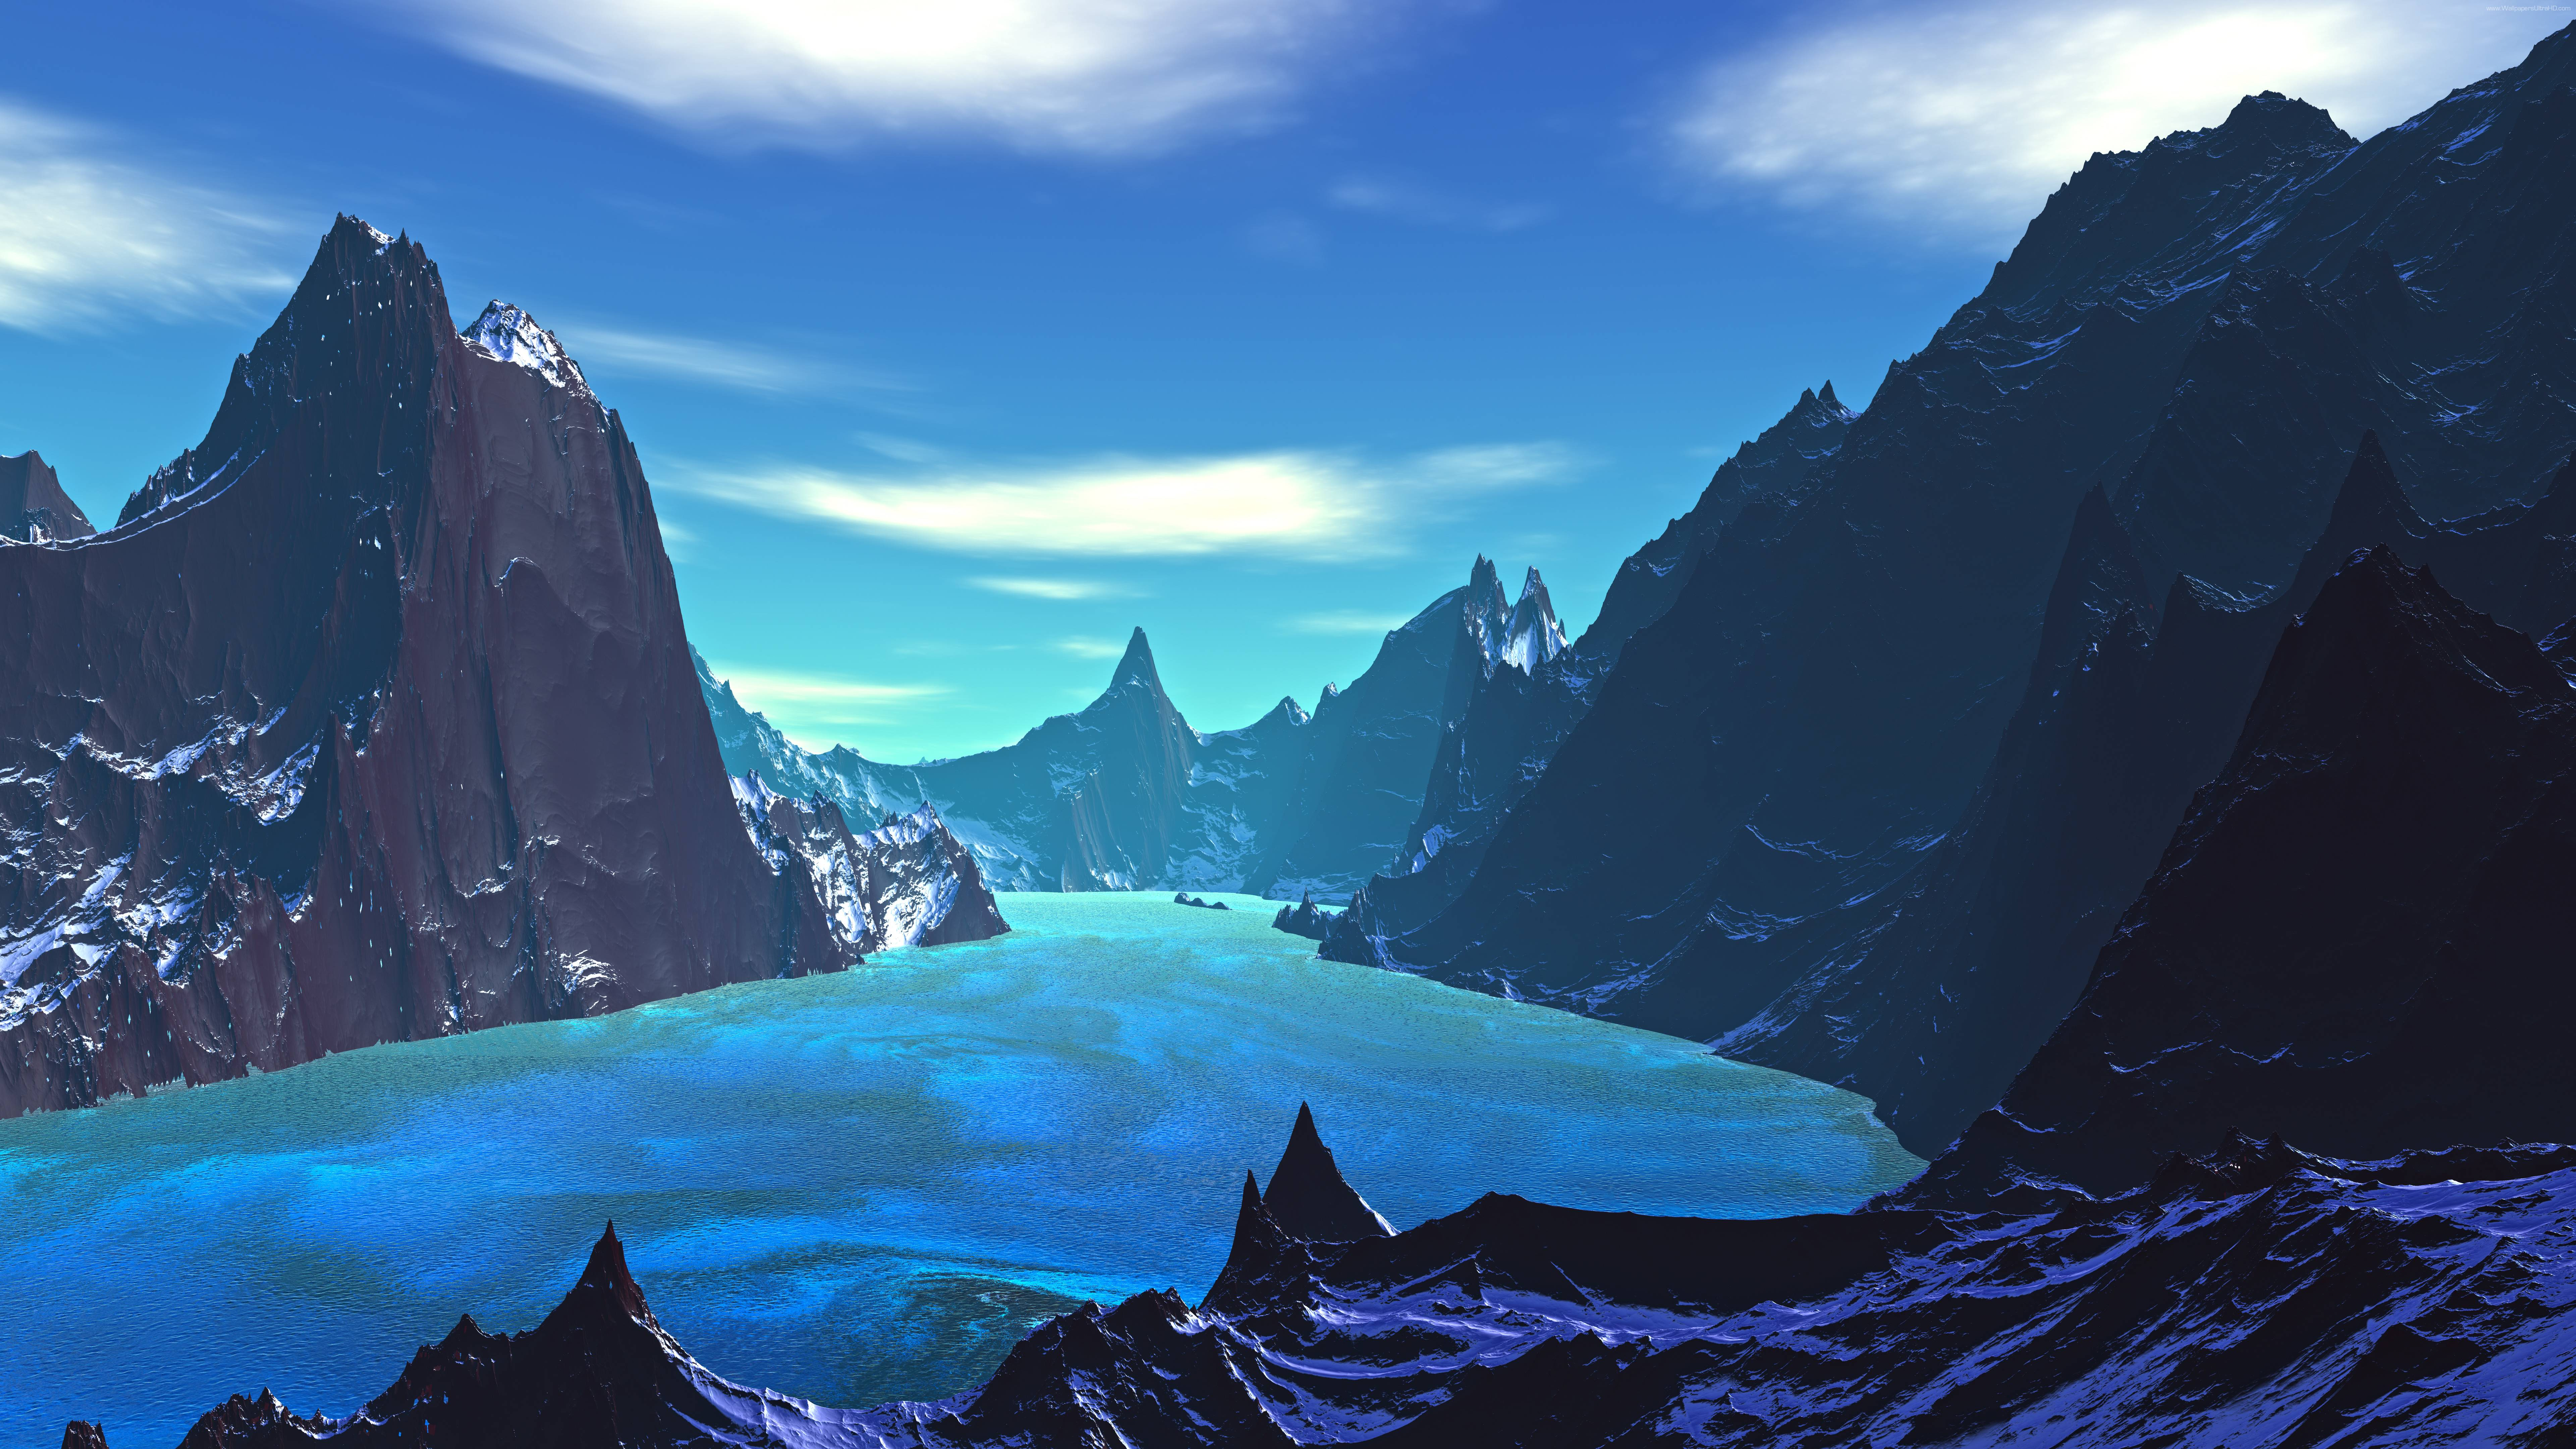 Lake 8k Blue Landscape Artistic, HD Artist, 4k Wallpapers